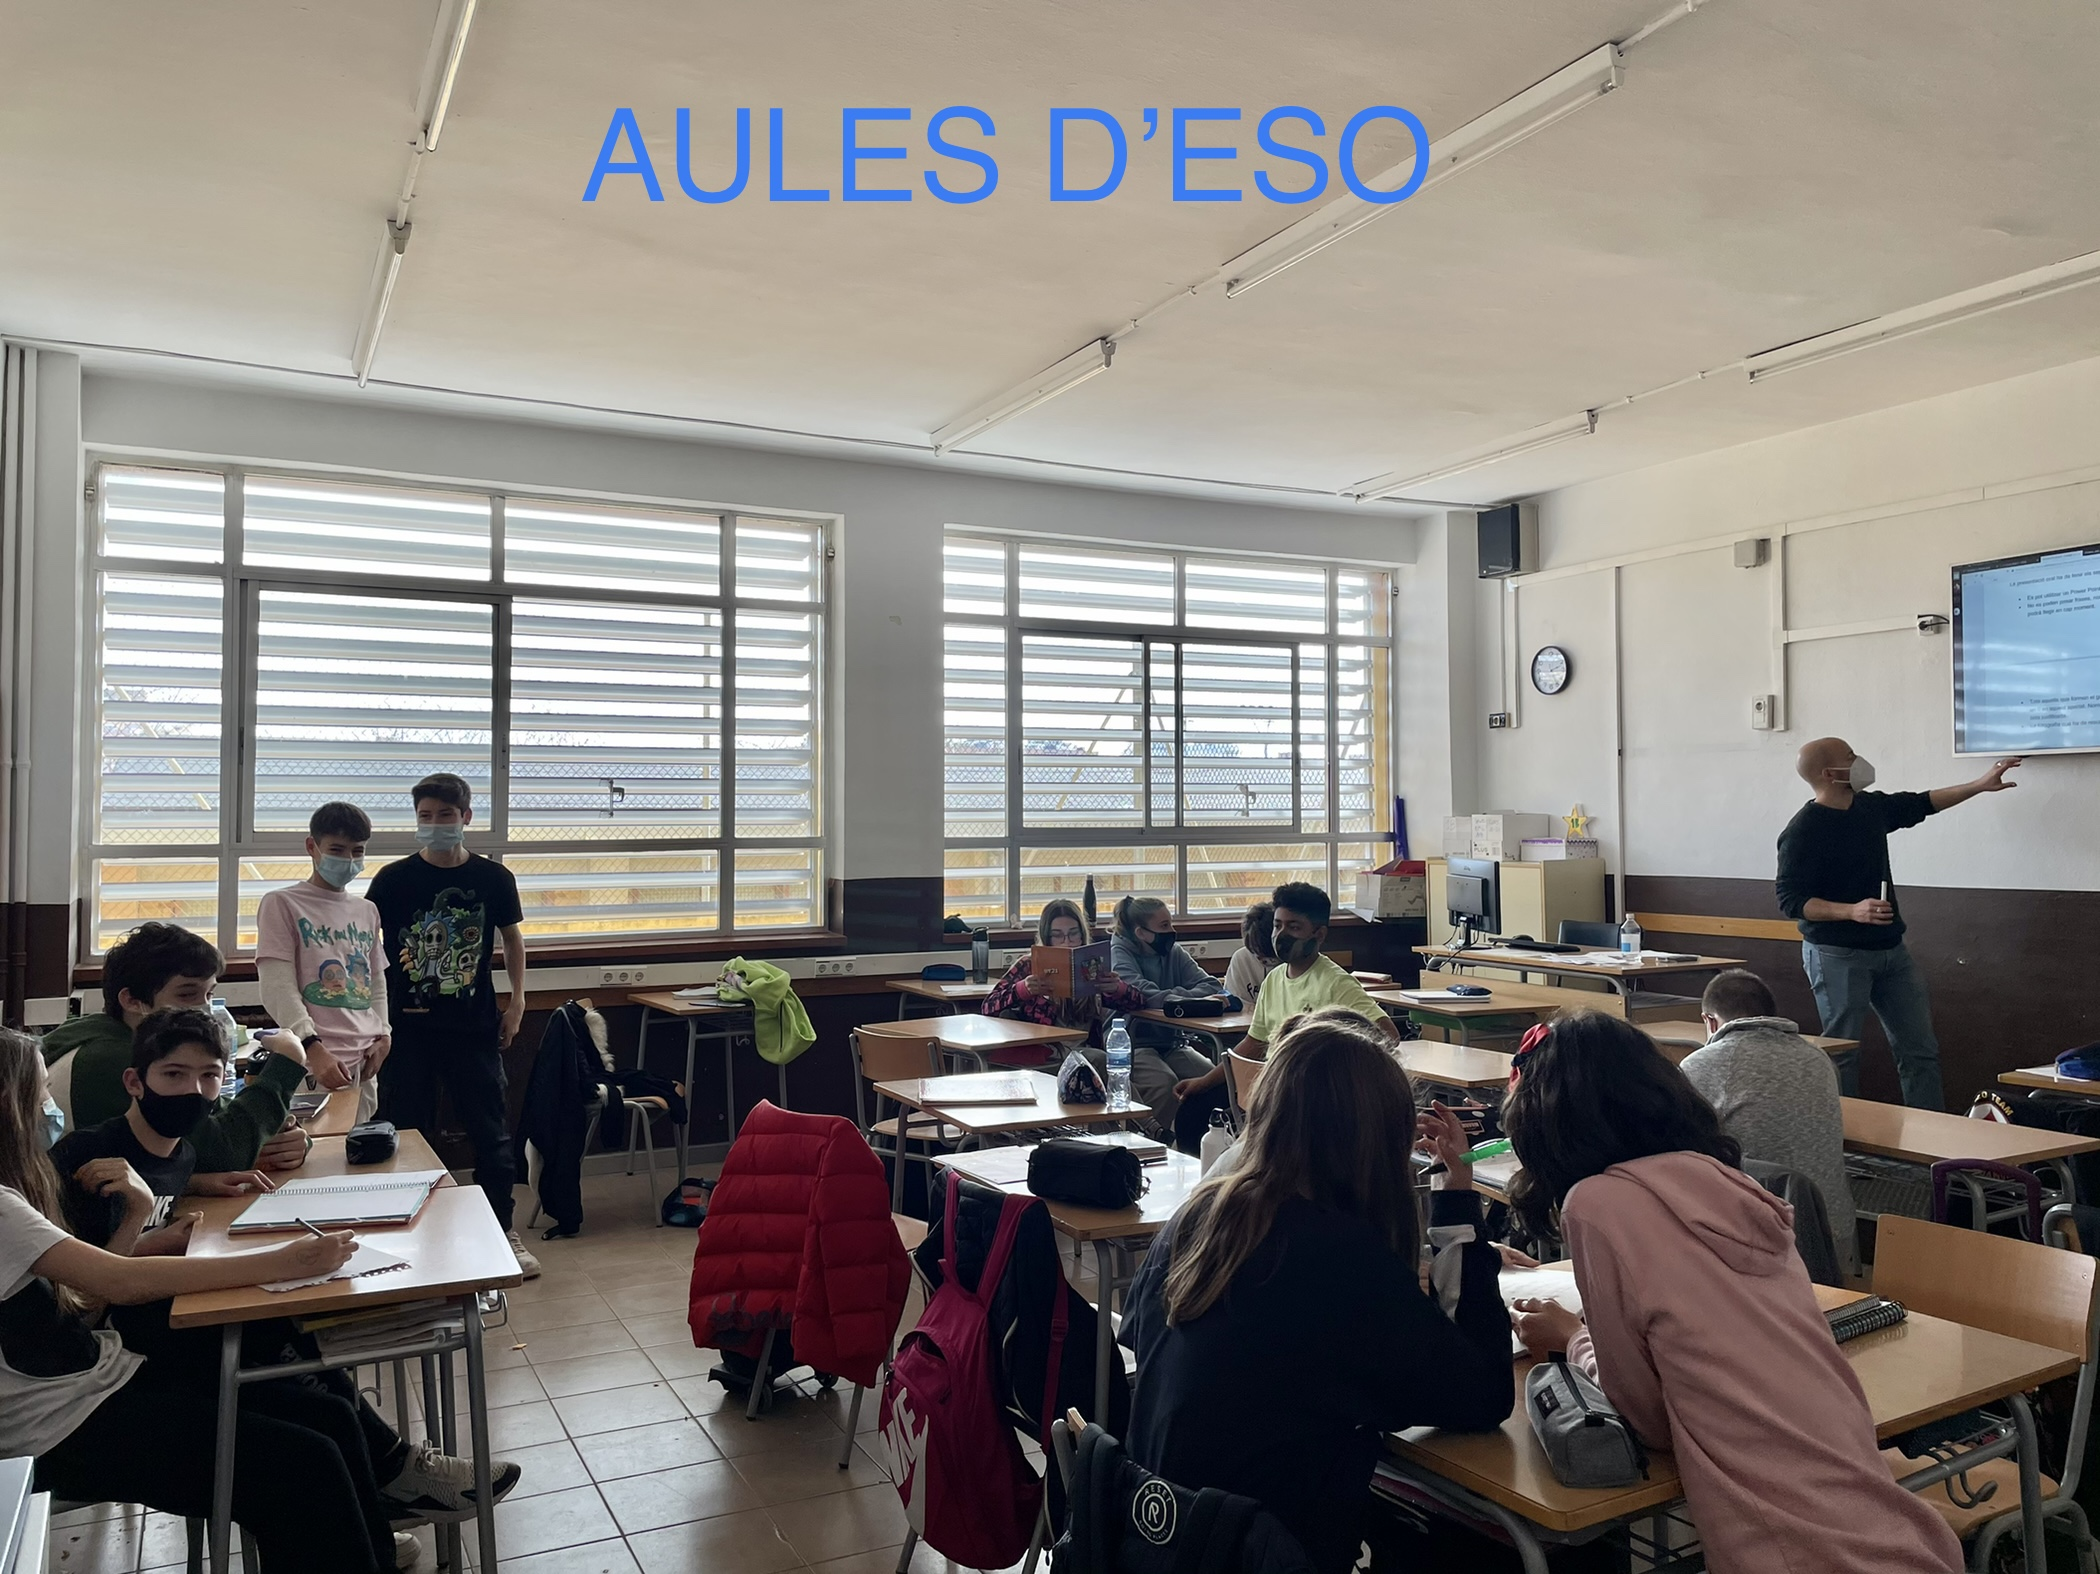 Aules d'ESO